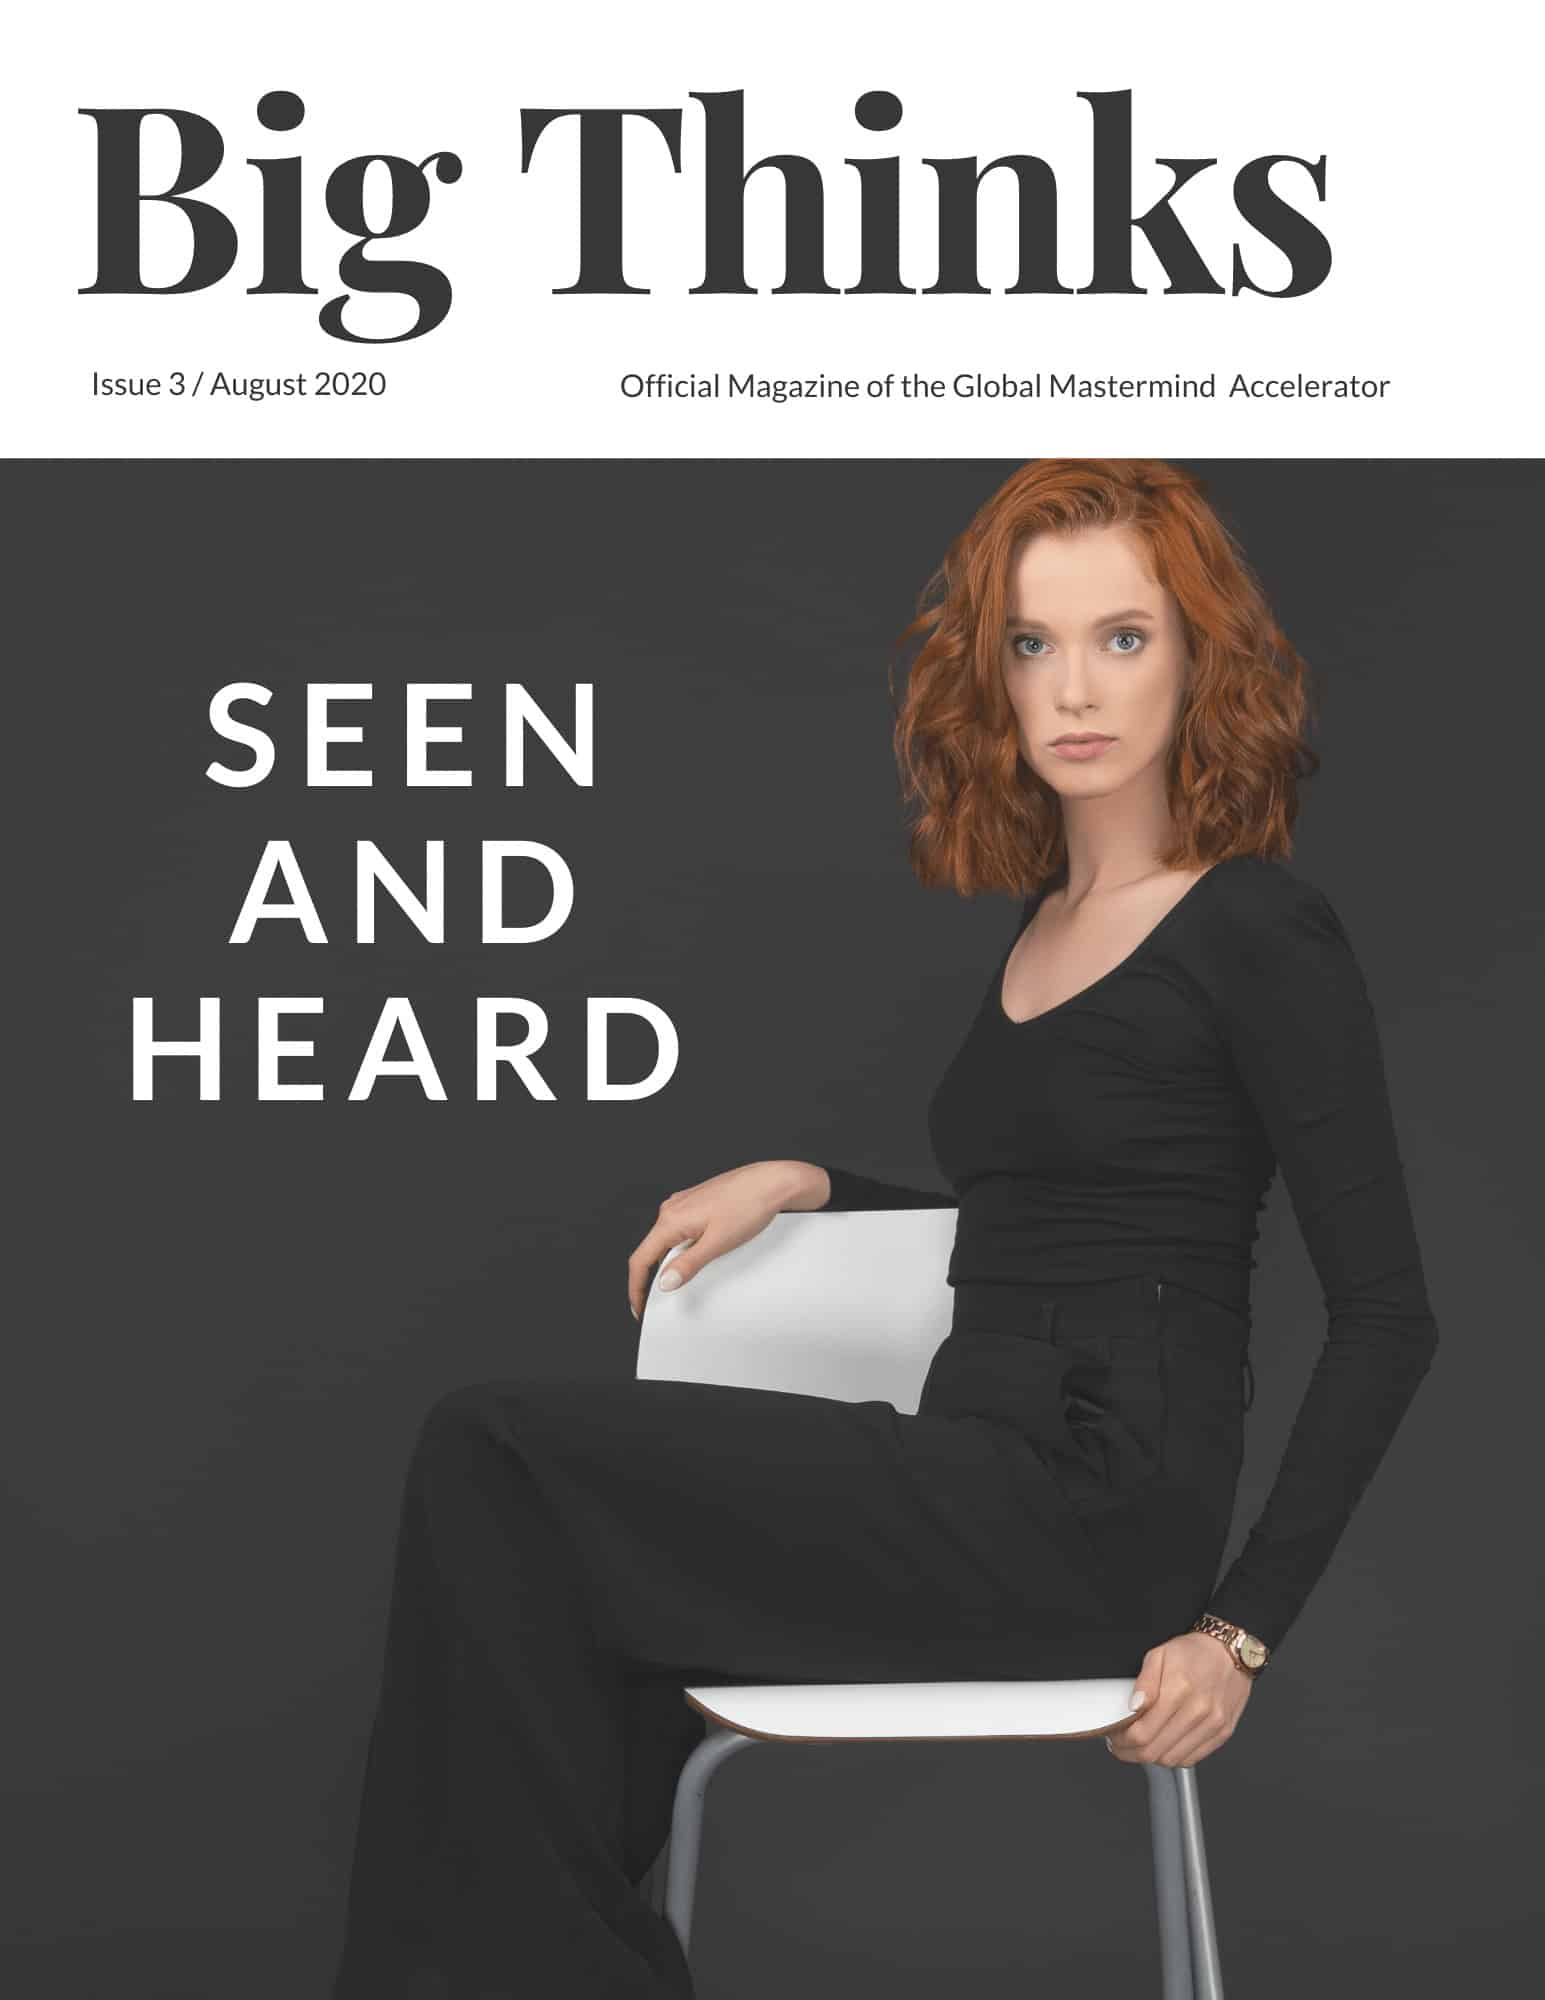 Big Thinks Magazine August 2020 Cover Seen and Heard